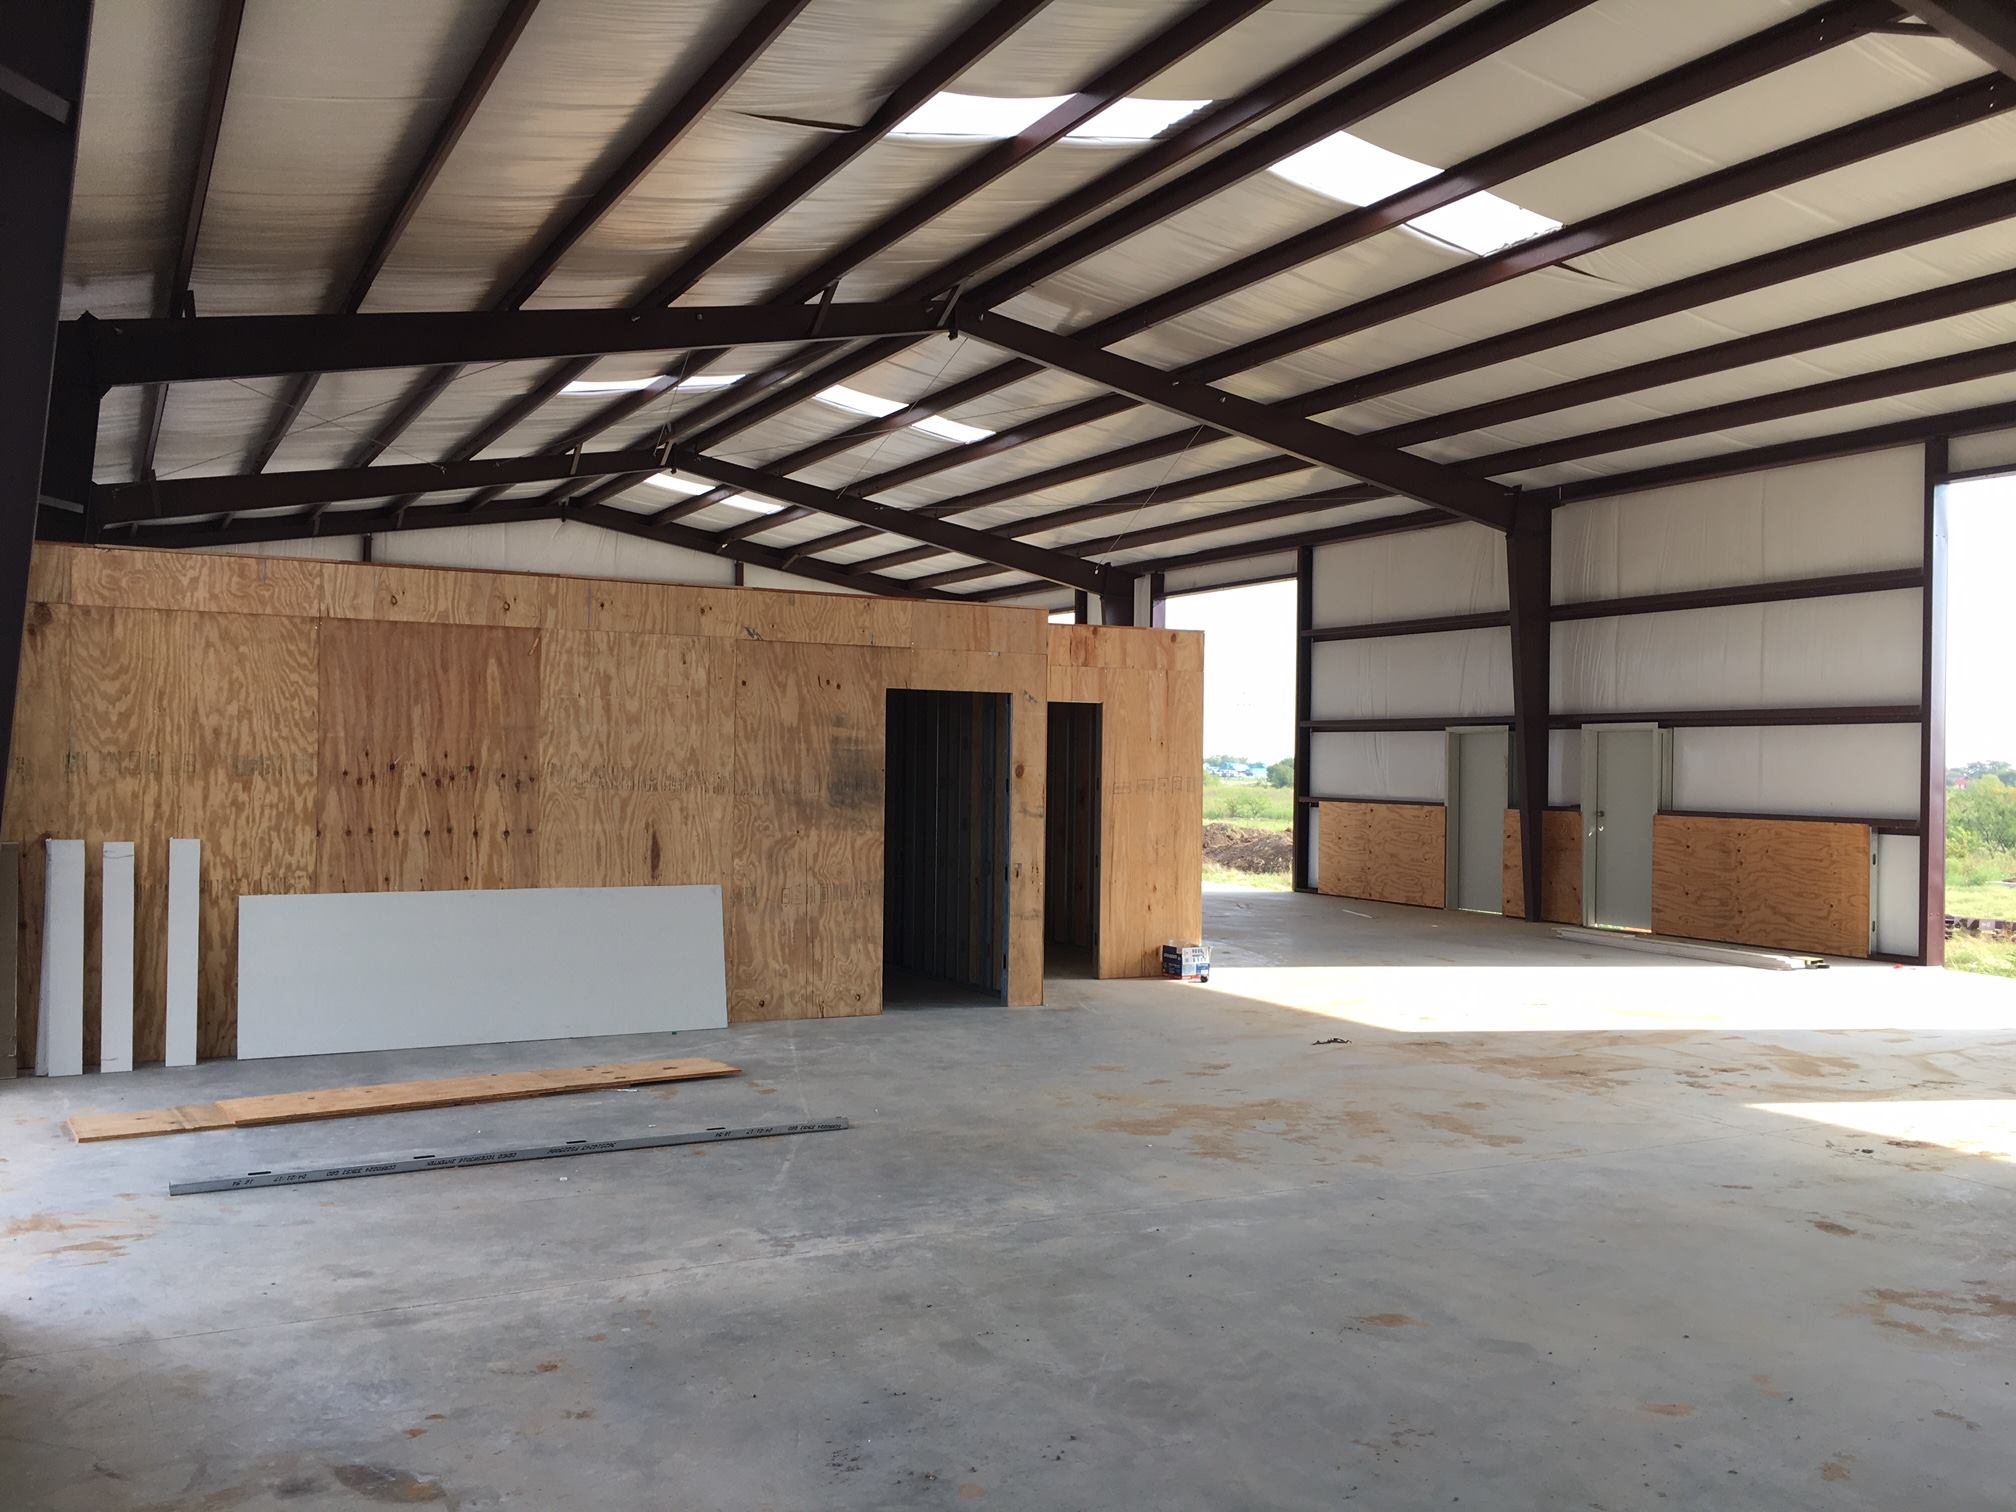 Commercial Space for Lease in North Fort Worth